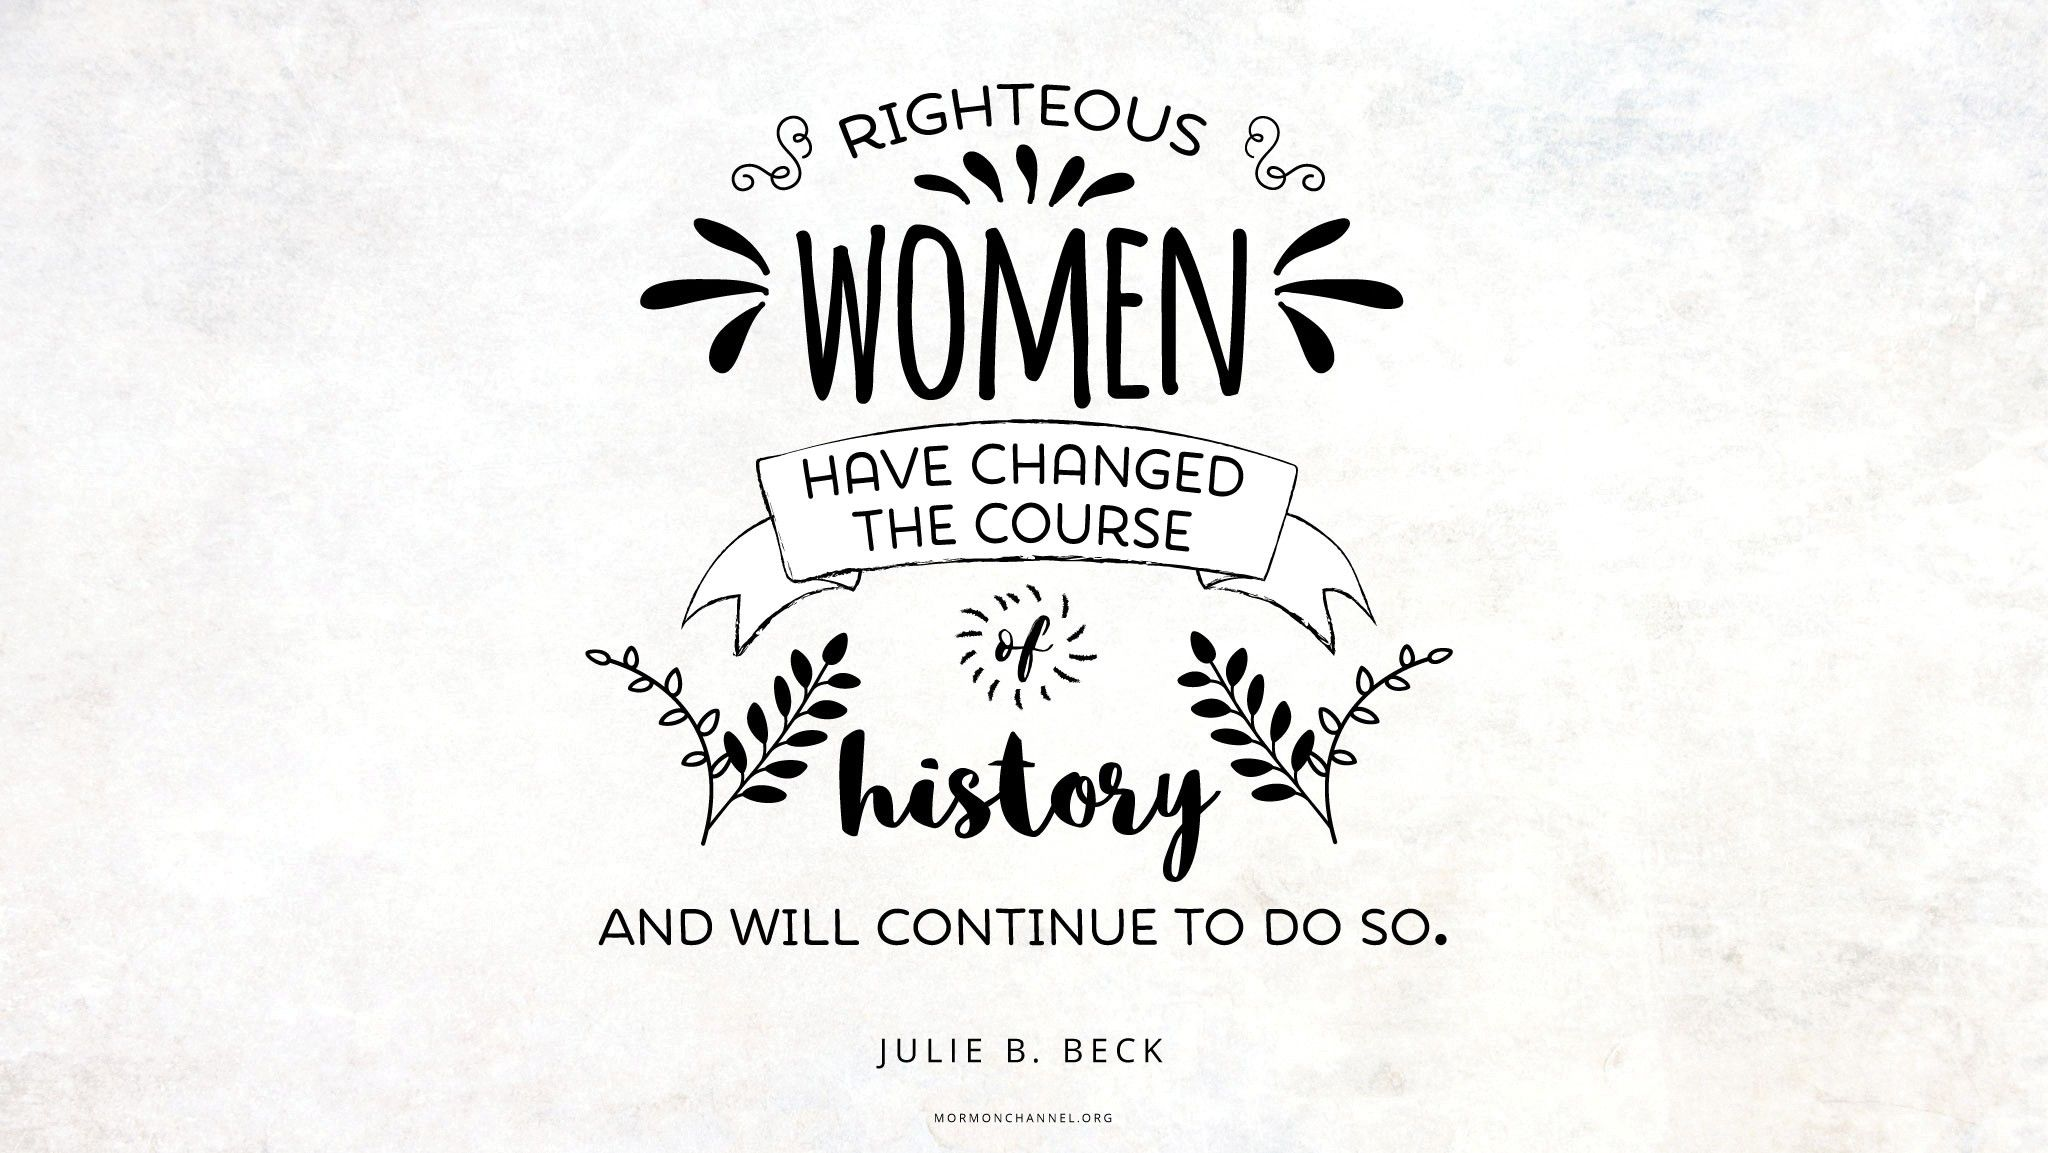 """""""Righteous women have changed the course of history and will continue to do so.""""—Sister Julie B. Beck, """"A 'Mother Heart'"""" © undefined ipCode 1."""